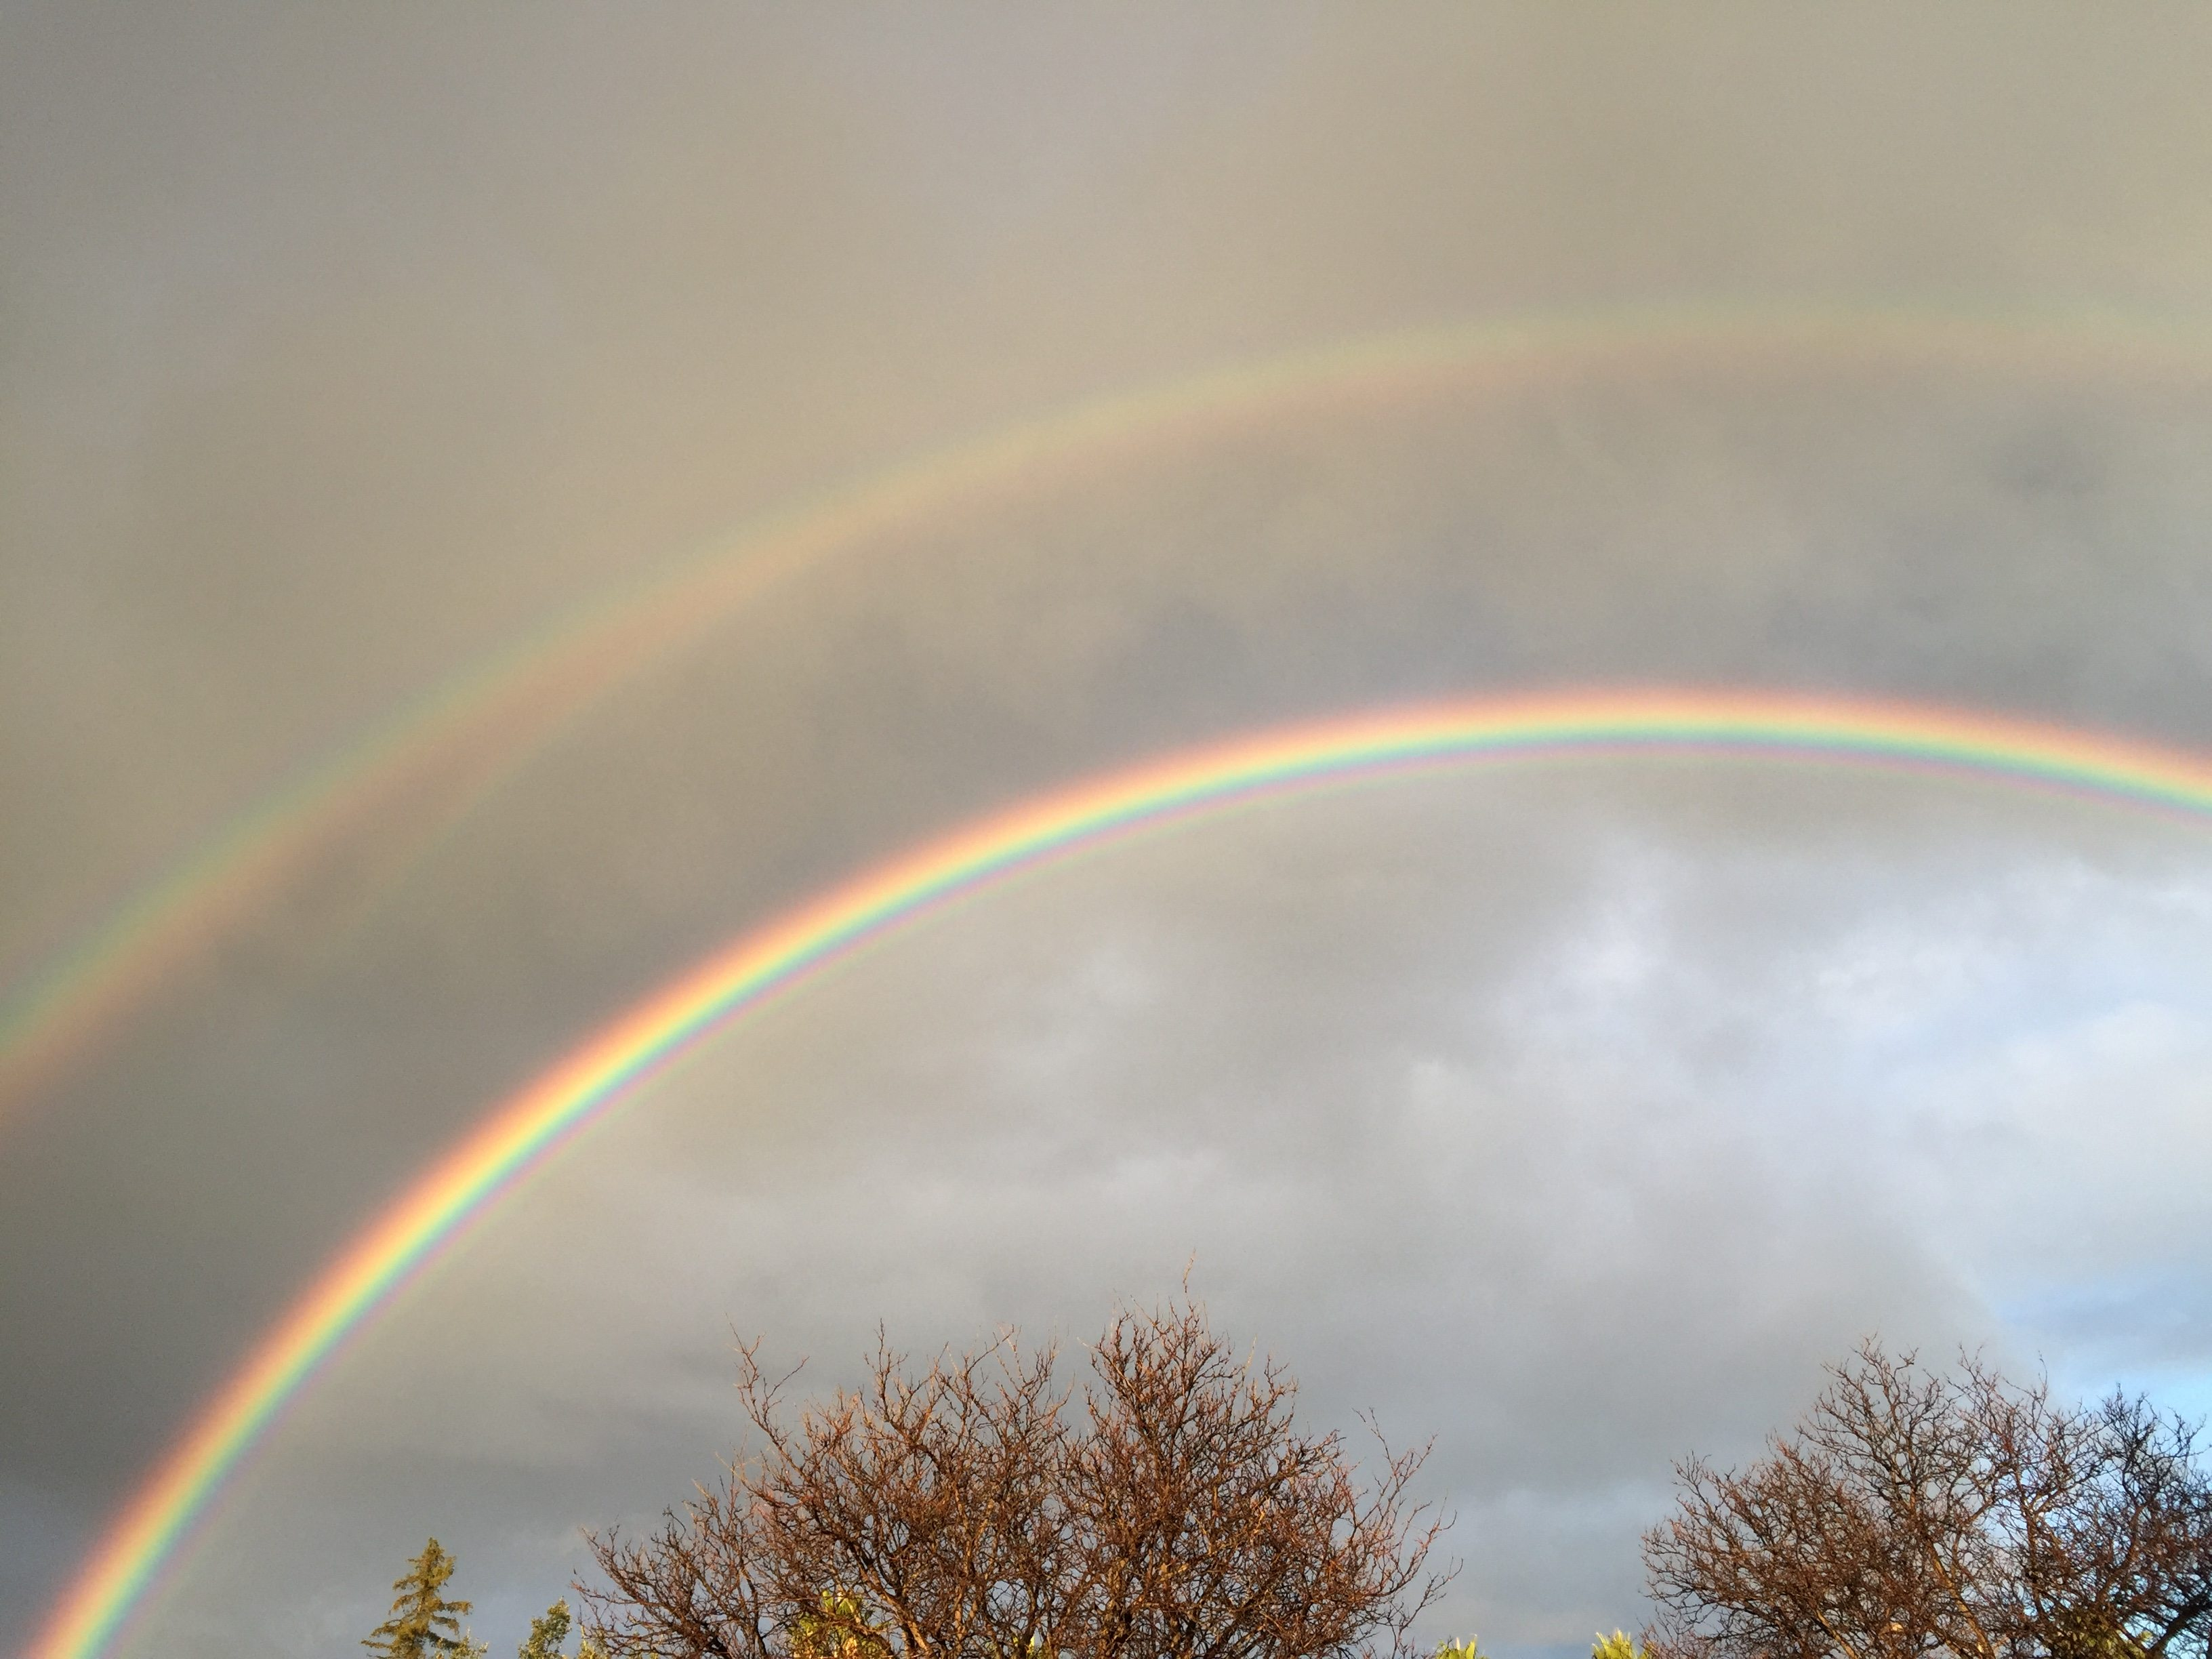 A lovely double rainbow over Fremont, CA. (photo by Ken Denmead)